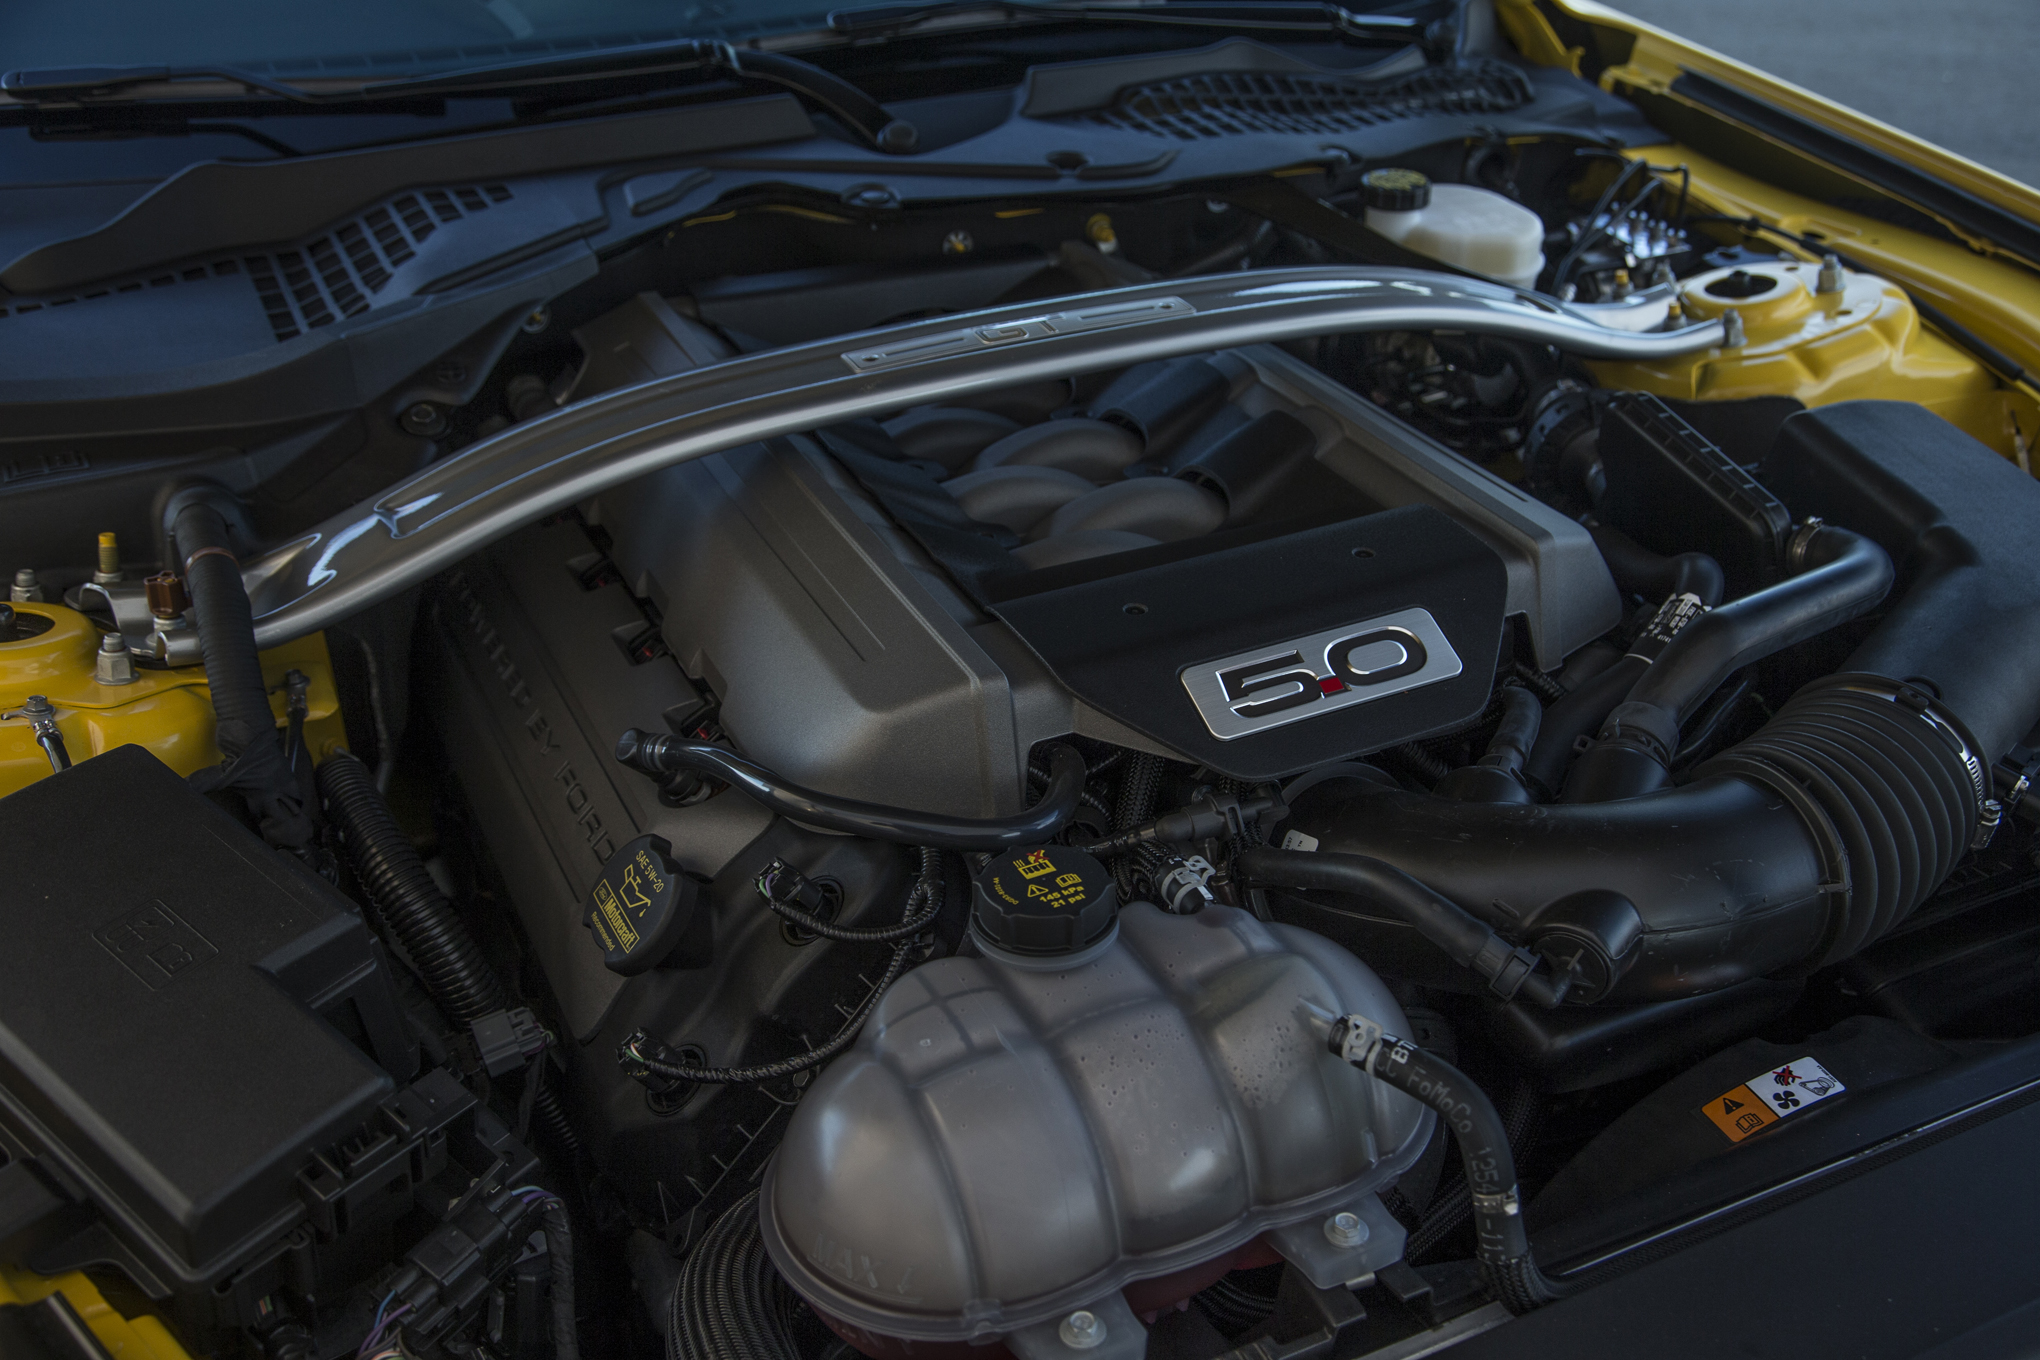 2015 Ford Mustang Gt Engine Preview  (Photo 7 of 30)